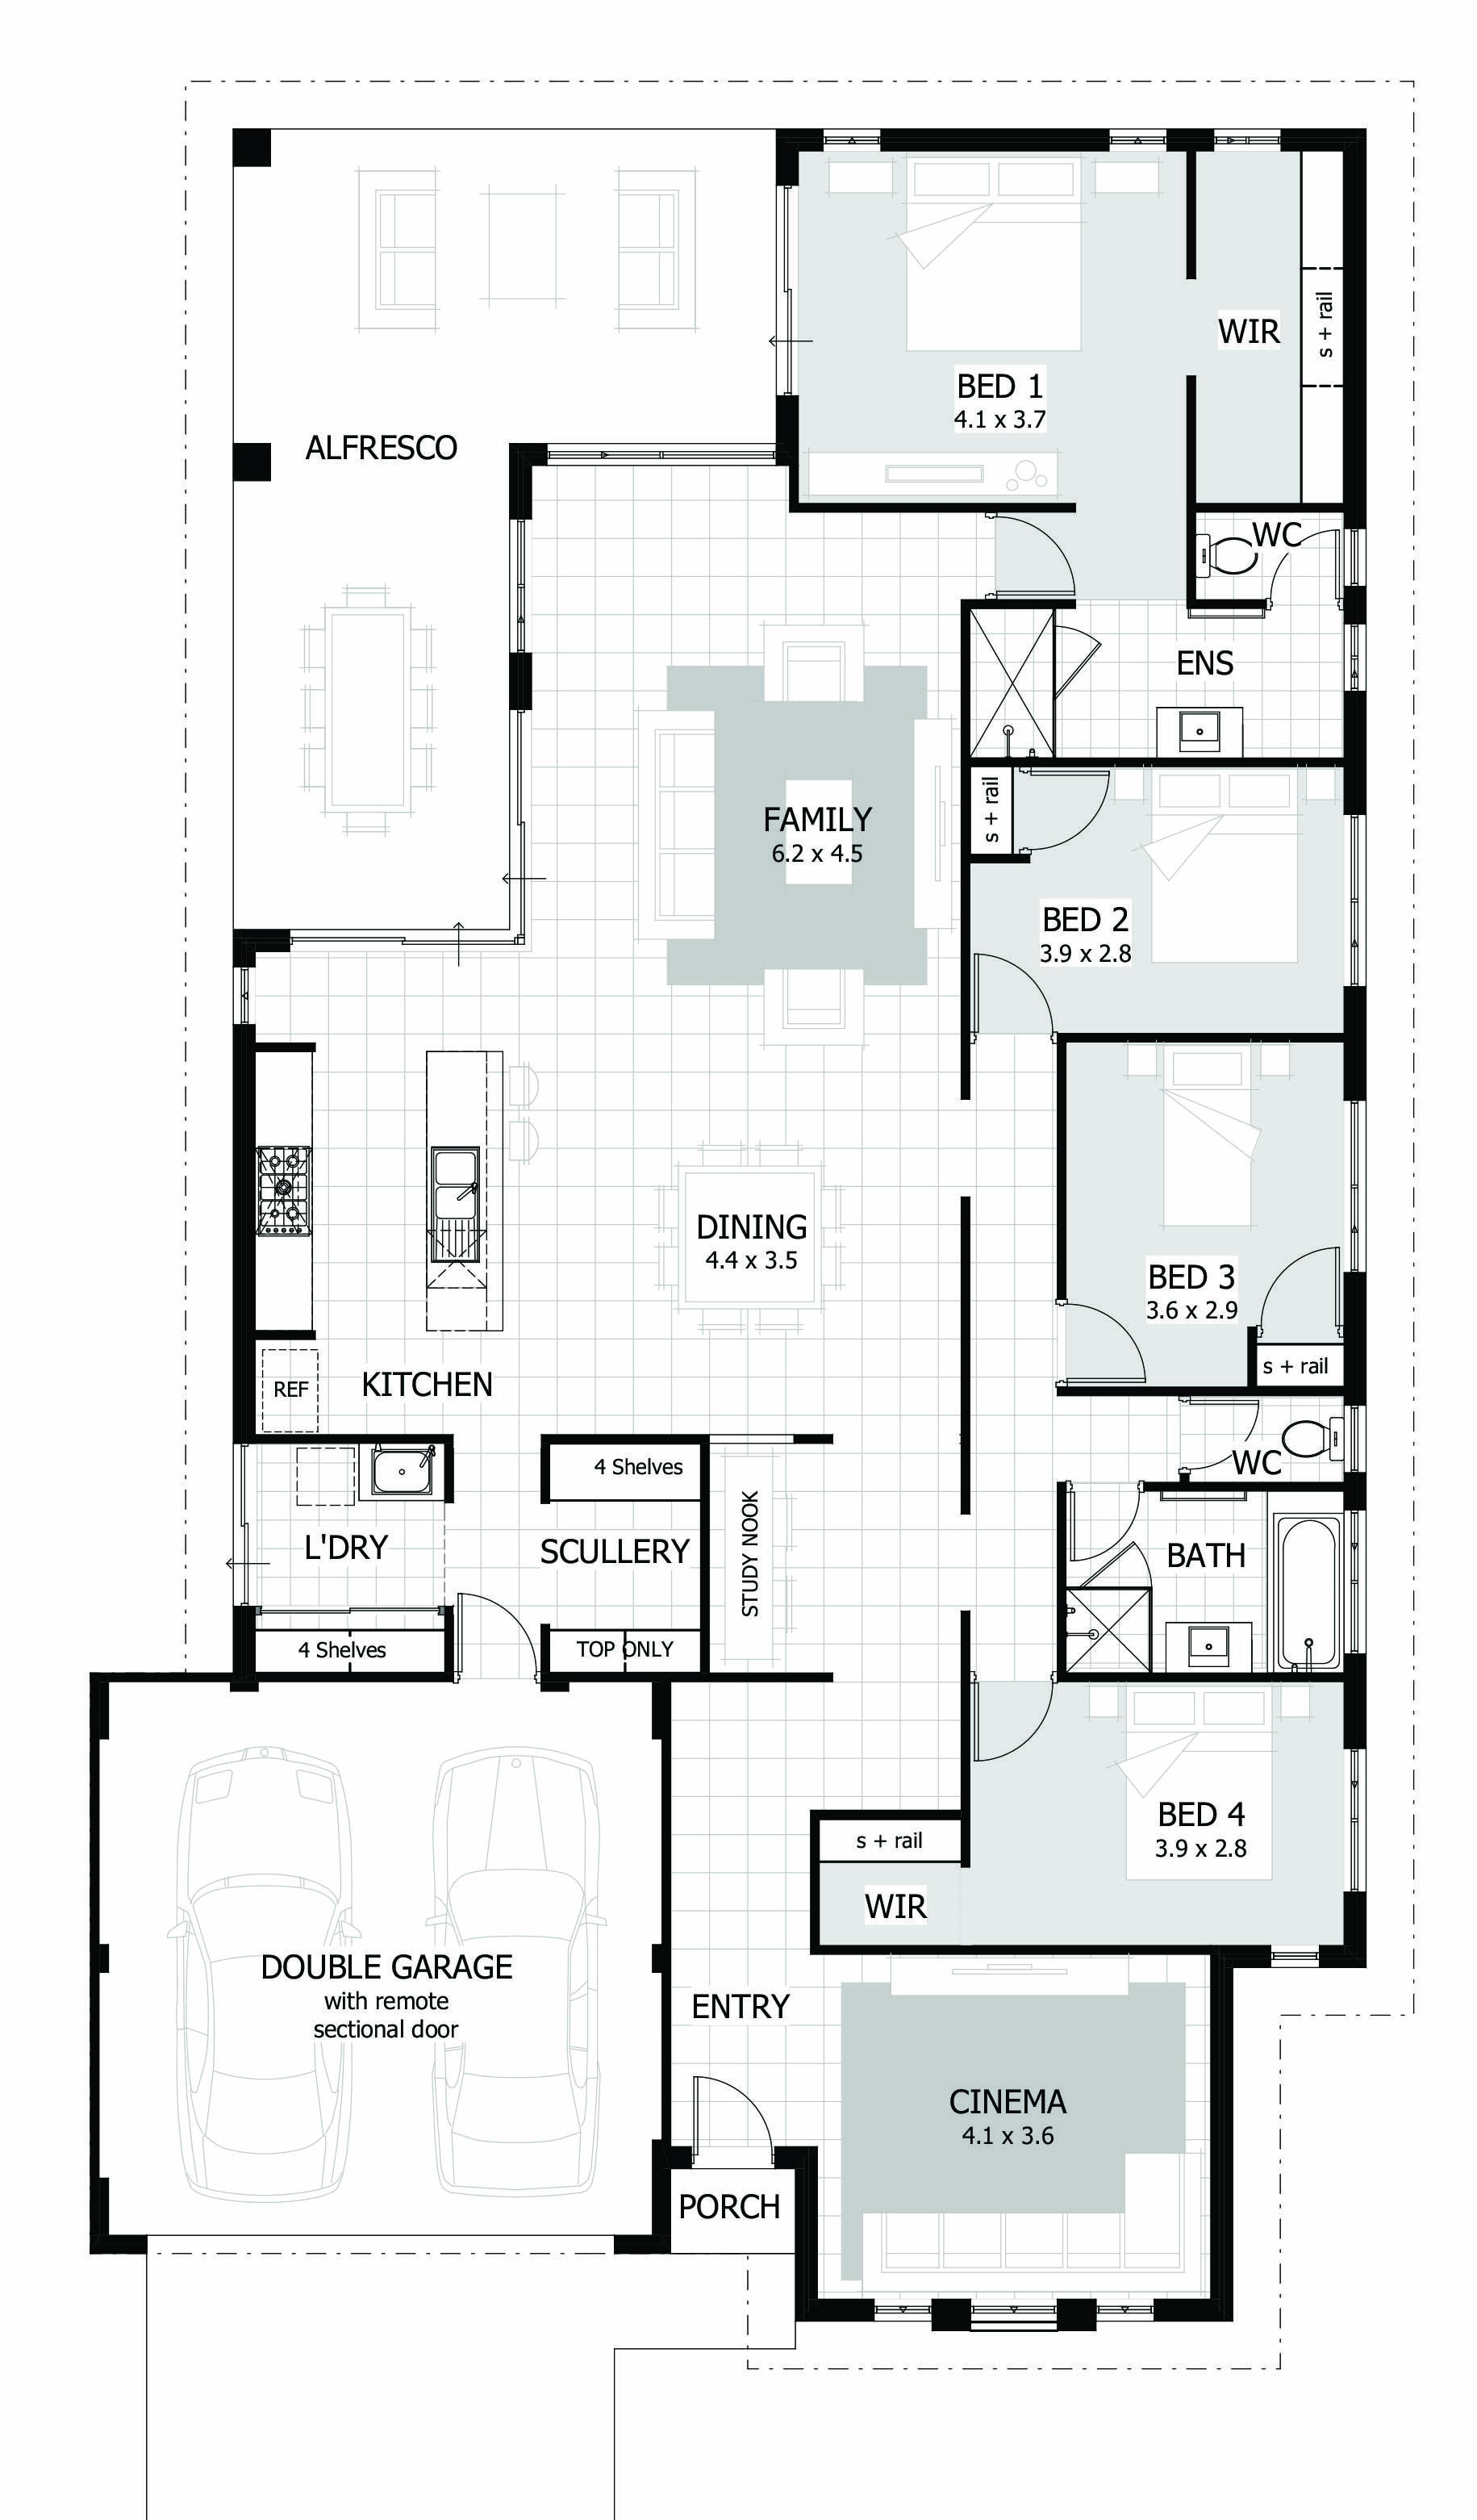 4 Bedroom House Plans & Home Designs Celebration Homes